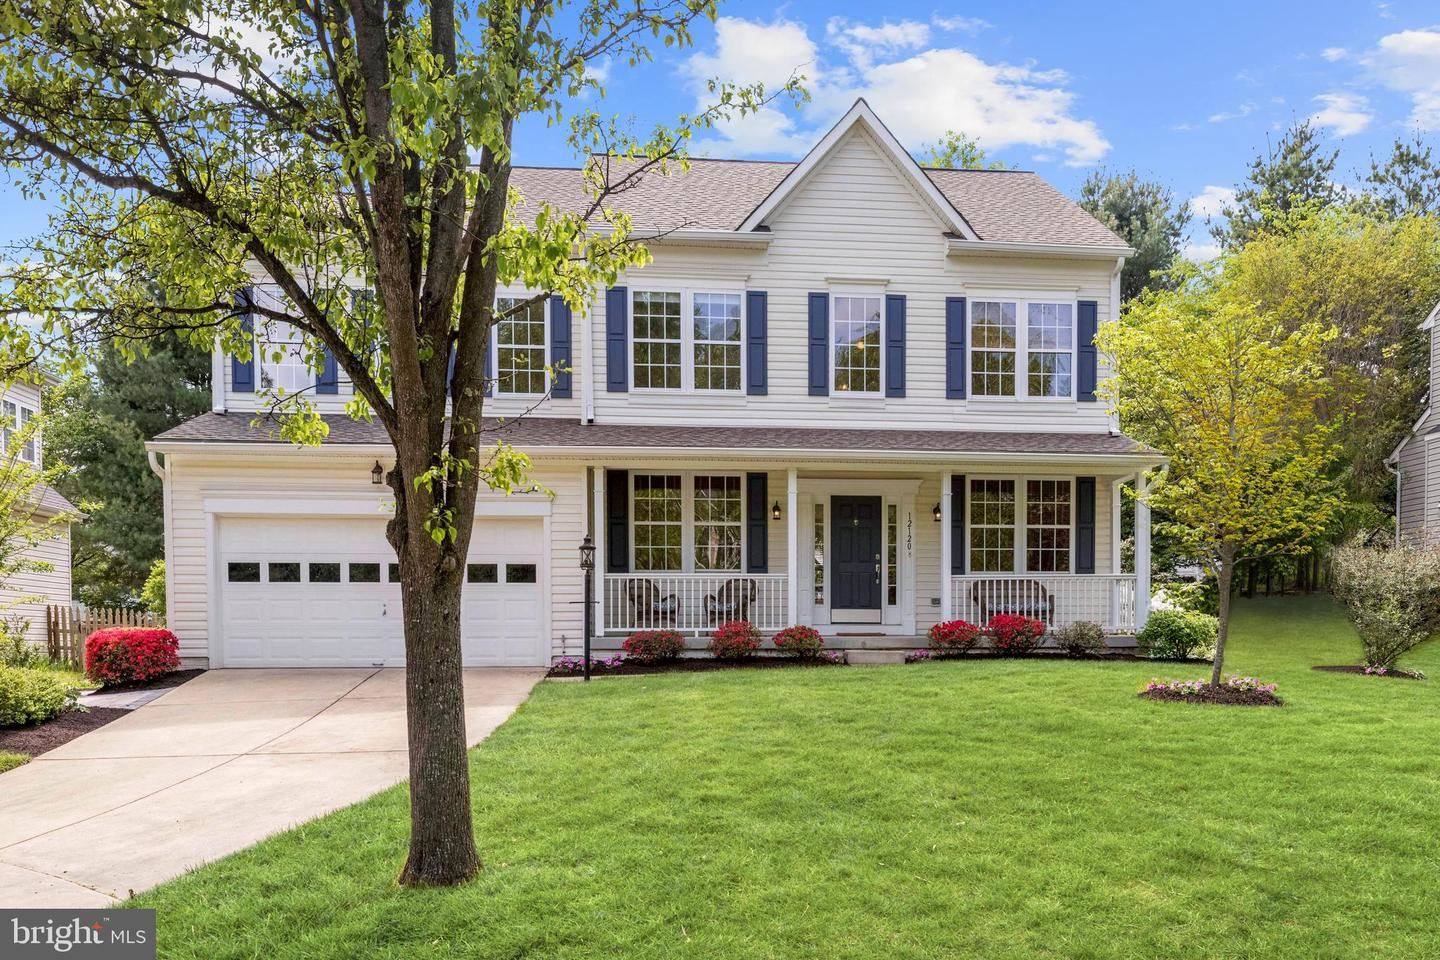 12120 EARLY LILACS PATH, Clarksville, MD 21029 - MLS#: MDHW293596